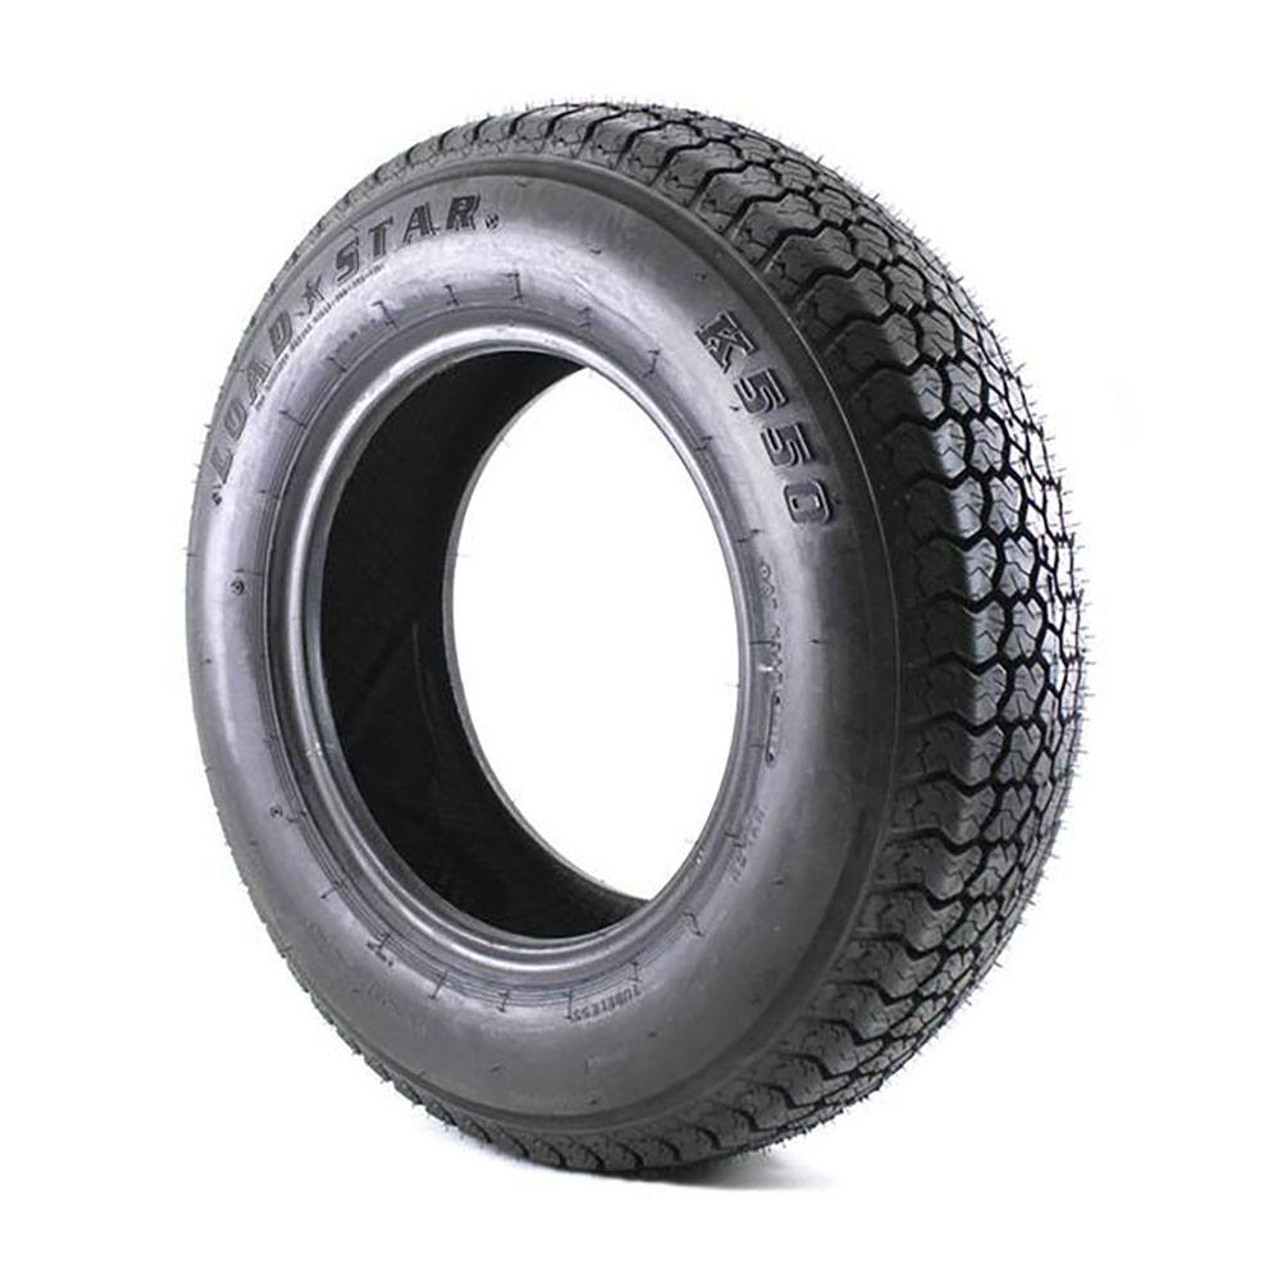 ST205/75D15 Load Range C Bias Ply Trailer Tire - Kenda Loadstar